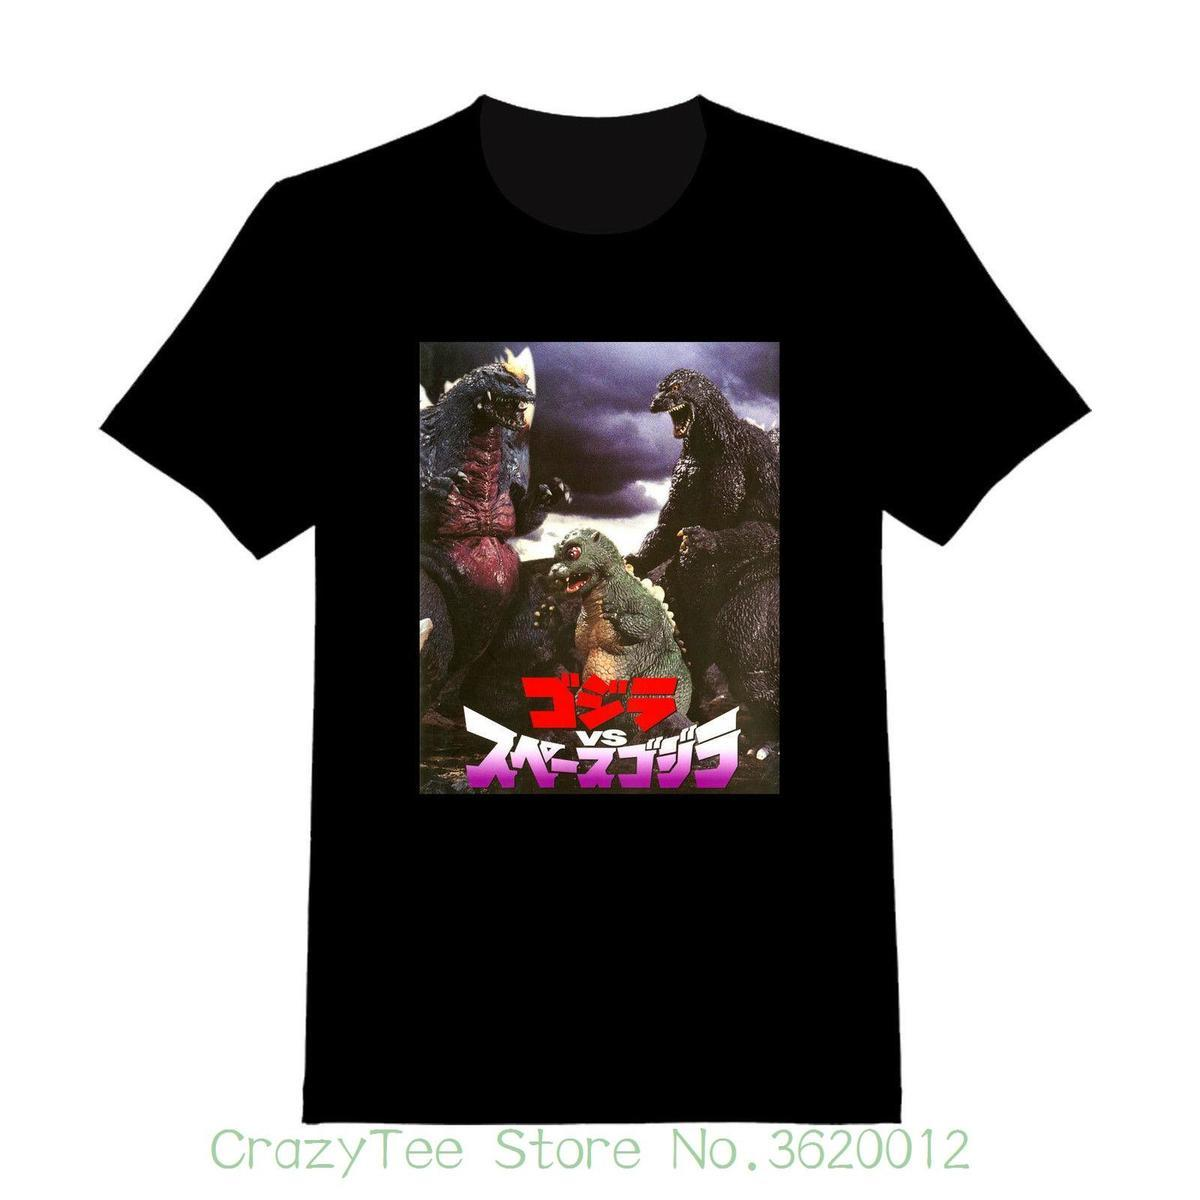 Women's Tee Godzilla Vs Spacegodzilla #2 - Custom Adult T-shirt ( 176 ) Female T-shirt Kawaii Punk Tops Tee